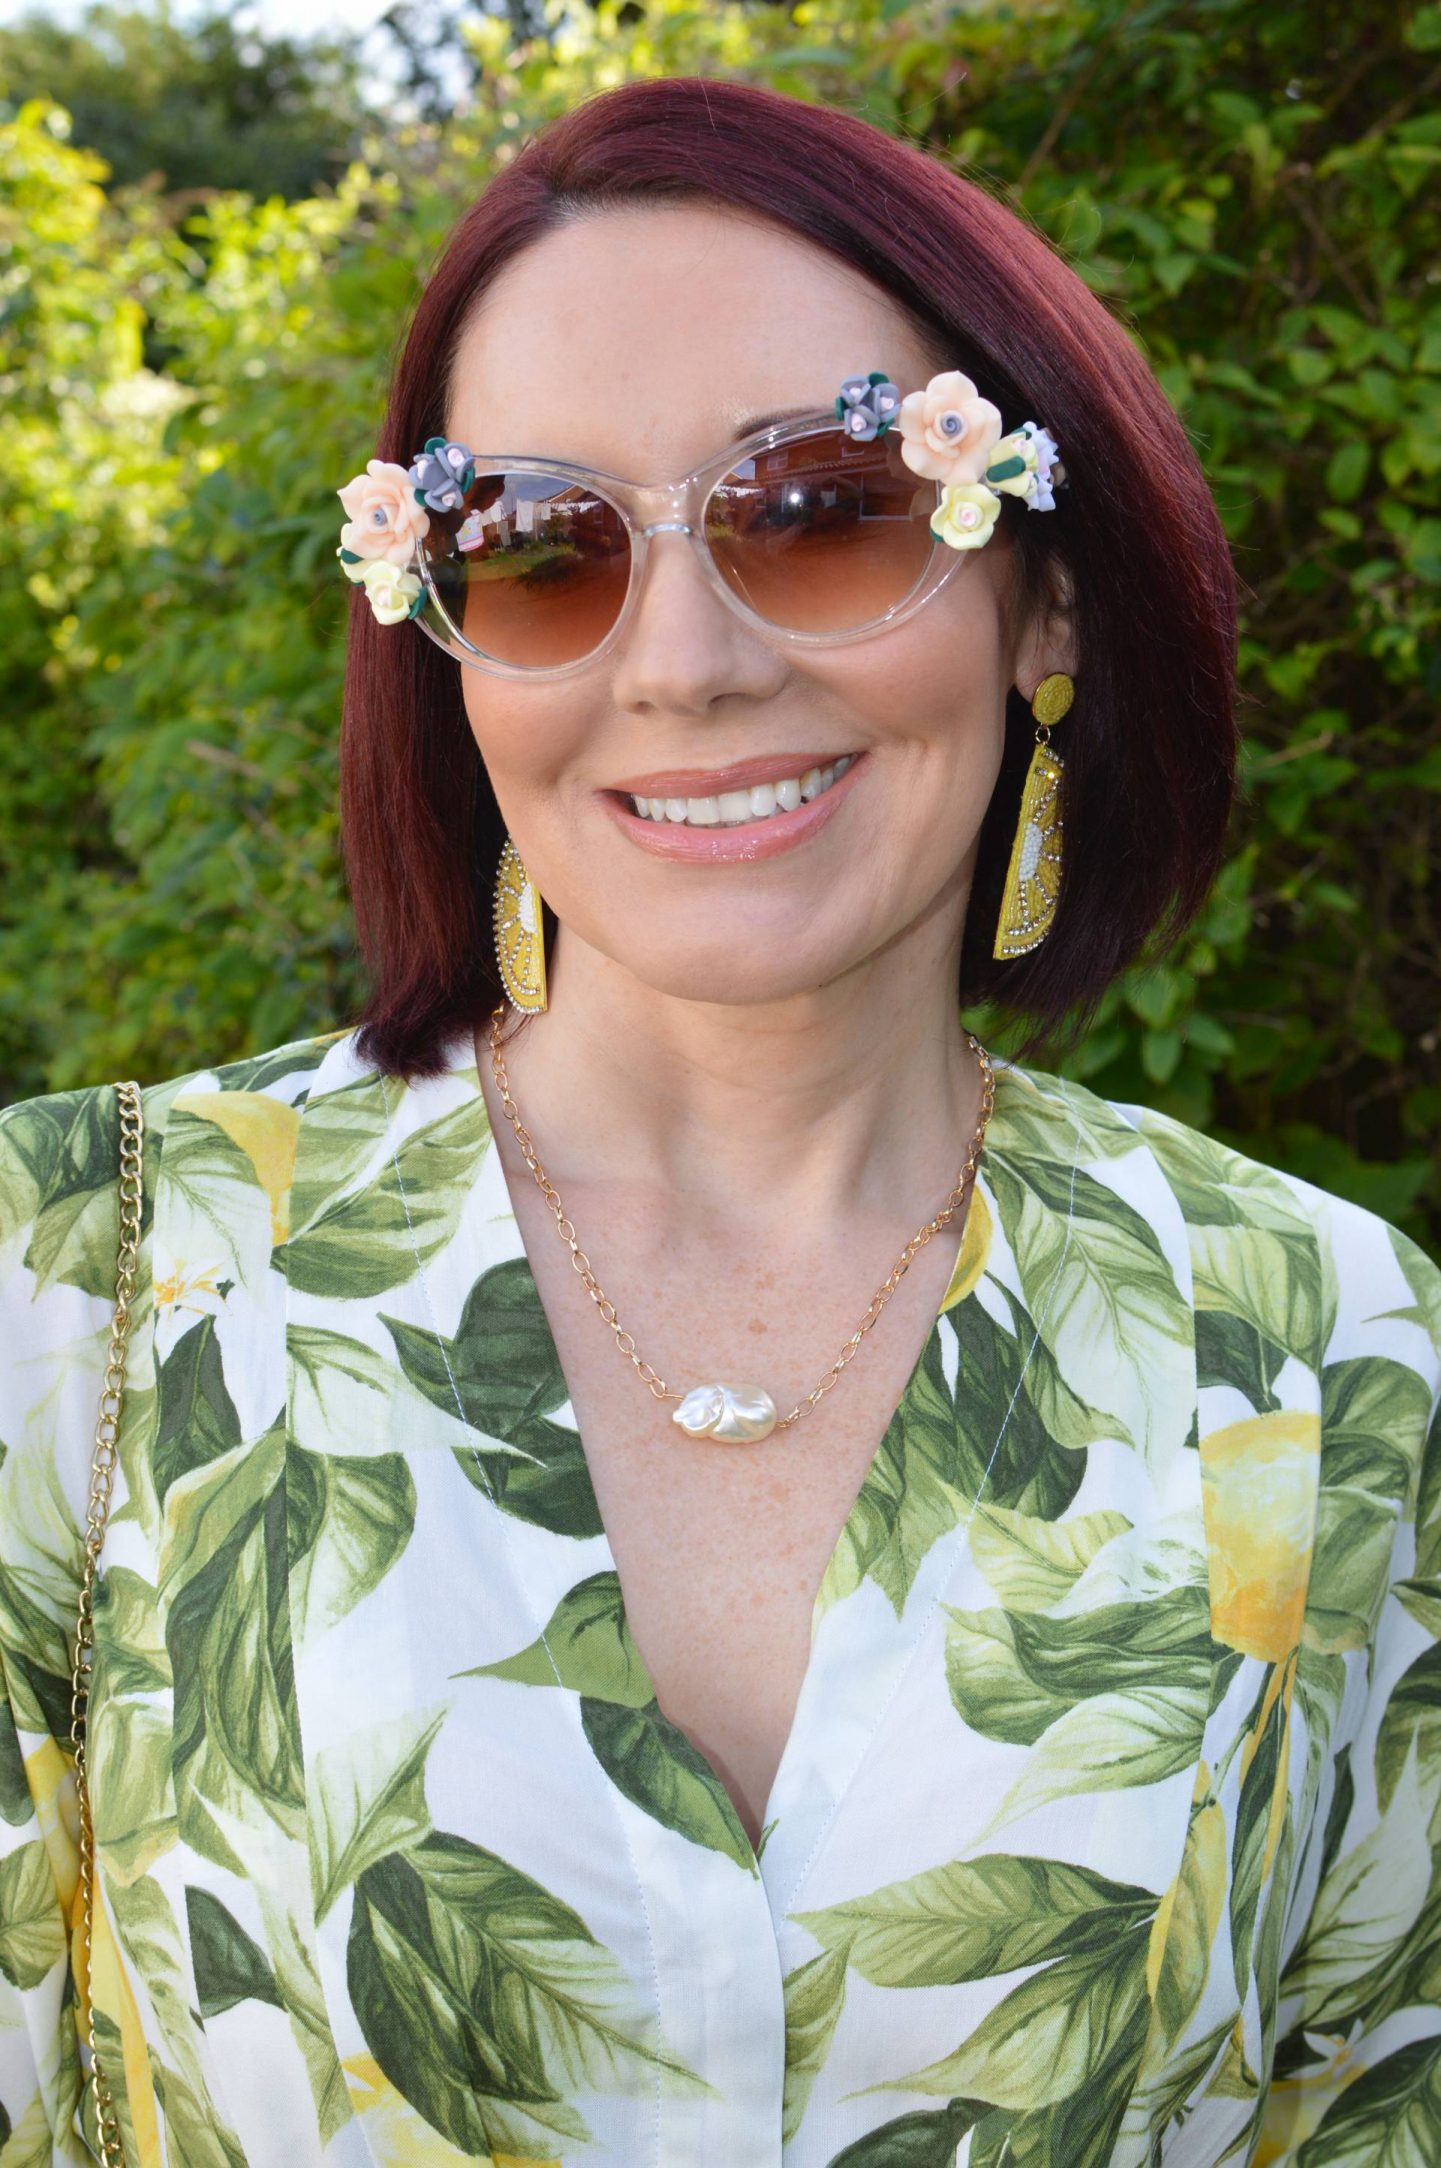 H&M Lemon earrings, Jeeper Peepers flower sunglasses